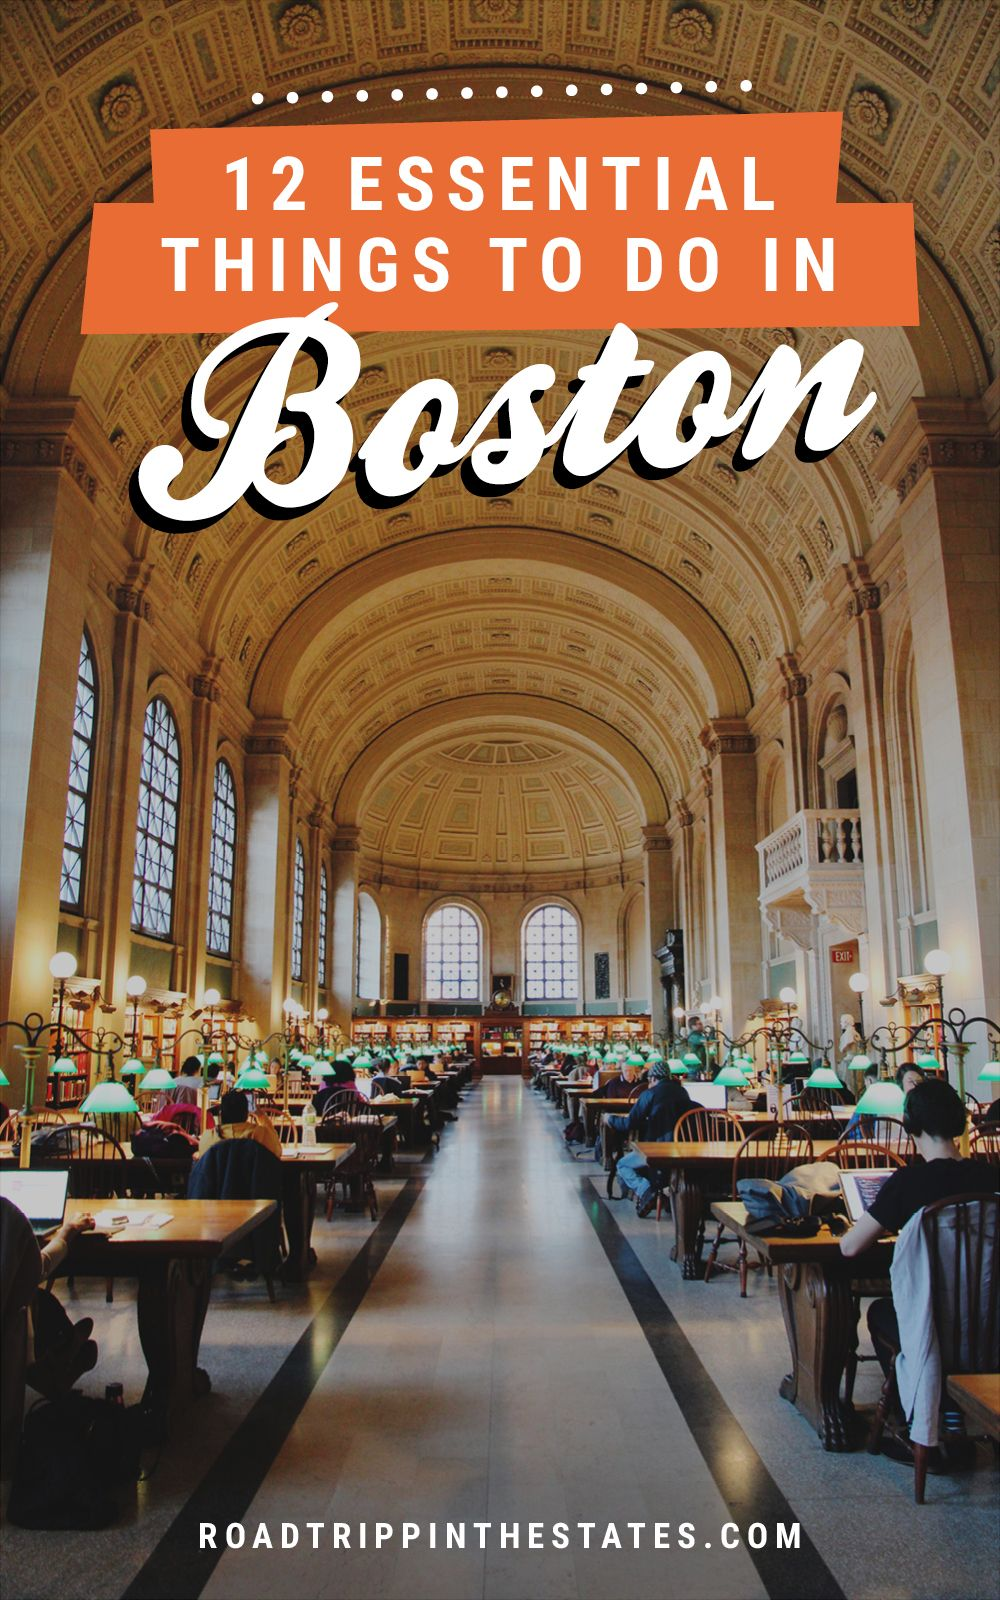 12 essential things to do in Boston